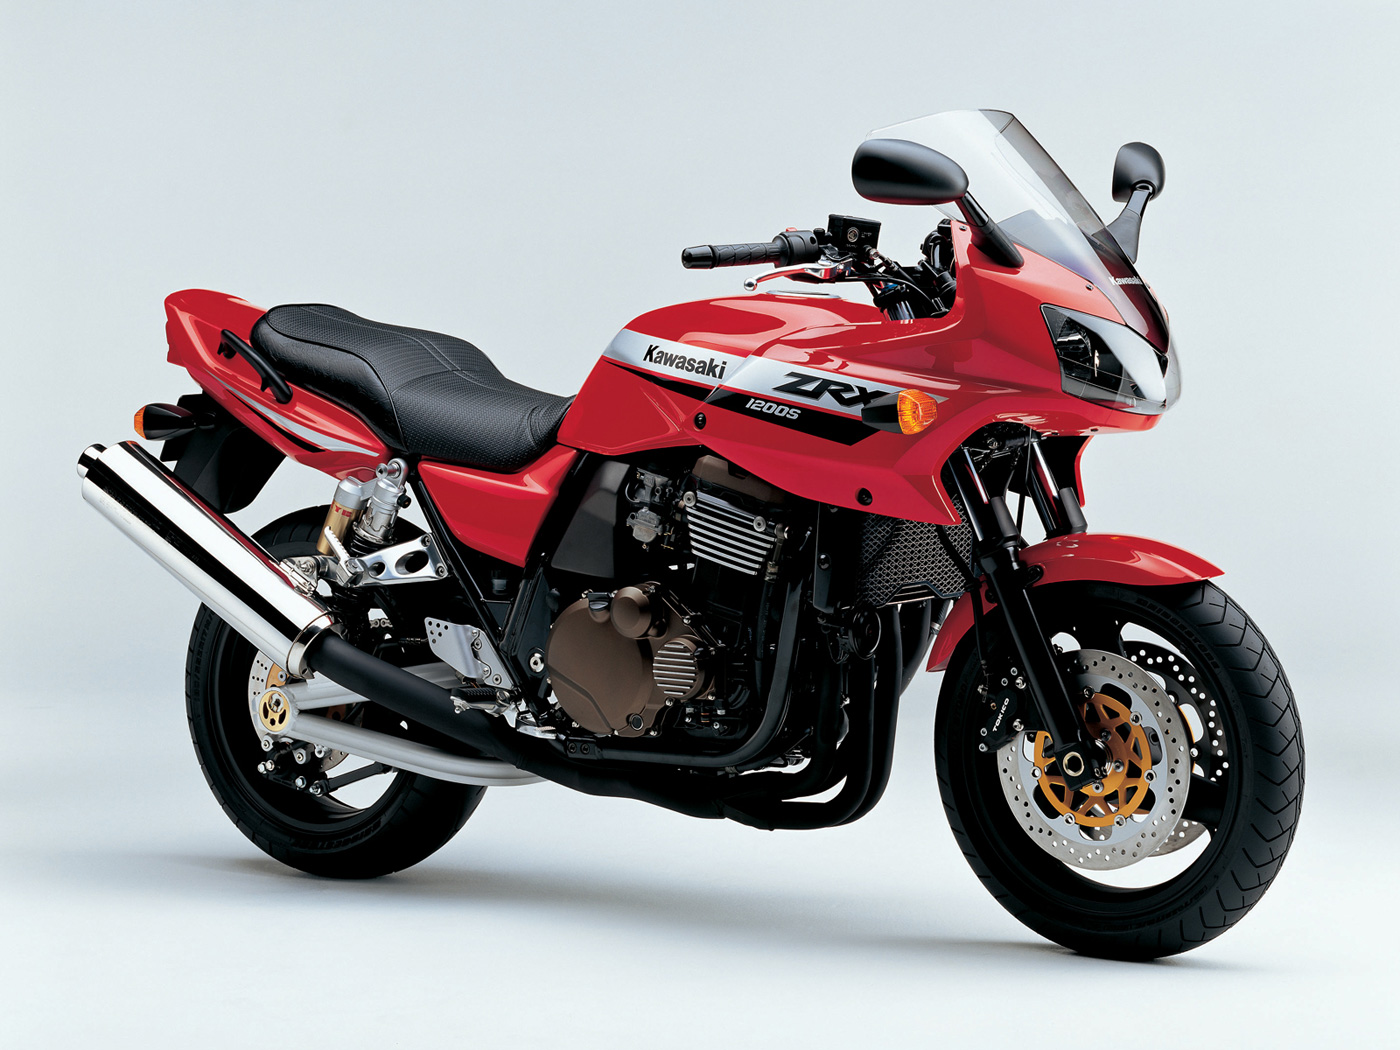 Kawasaki Gpz Turbo Wiring Diagram Excellent Electrical Zrx 1100 Get Free Image About Promo Film